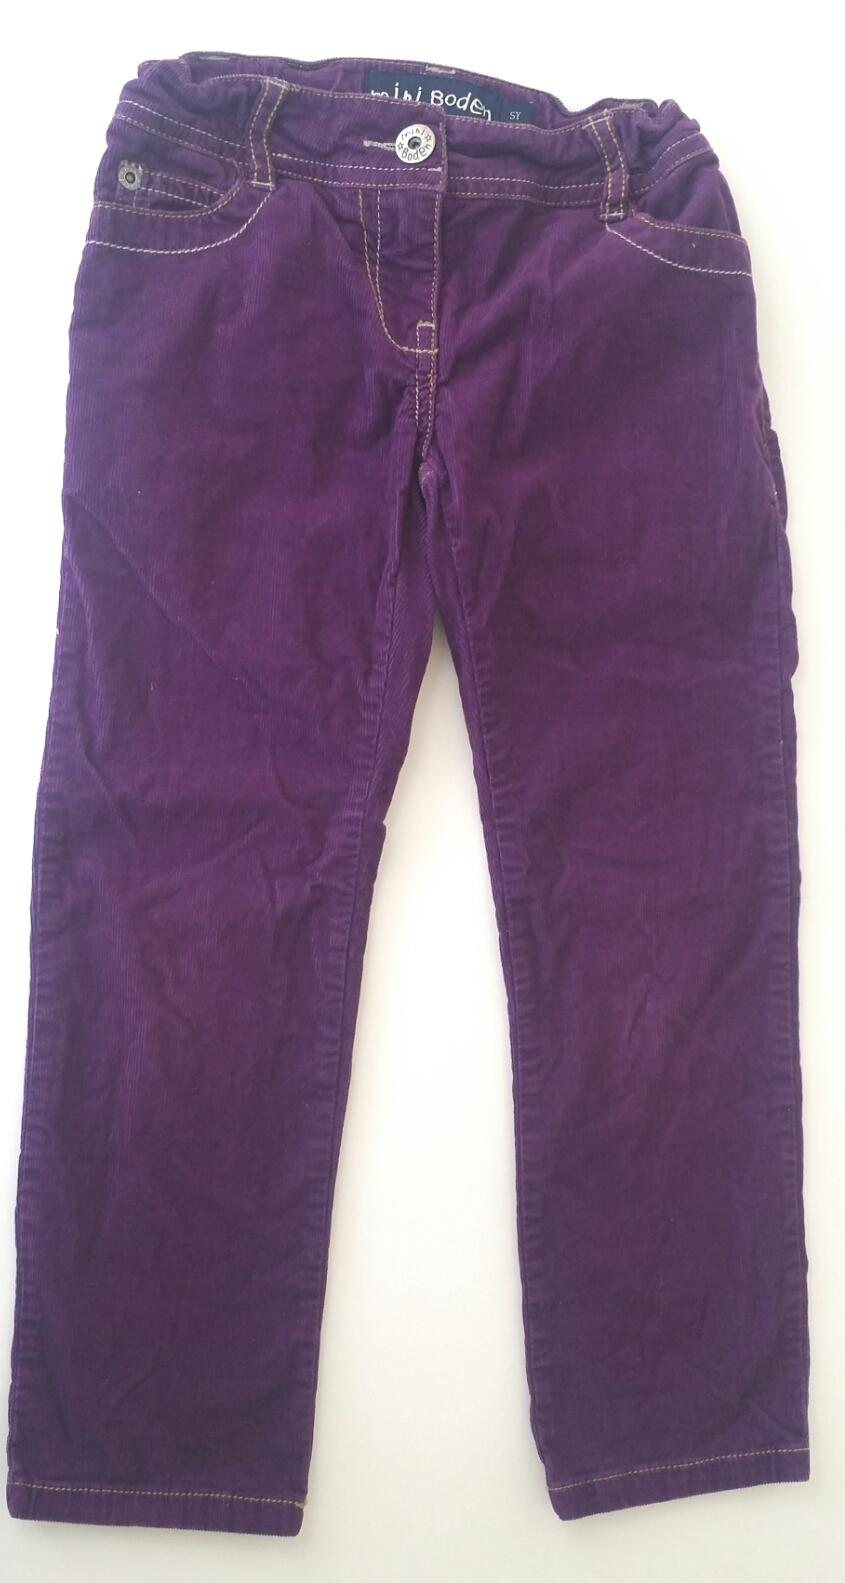 Mini-Boden-5-YEARS-Corduroy-Pants_2098990A.jpg